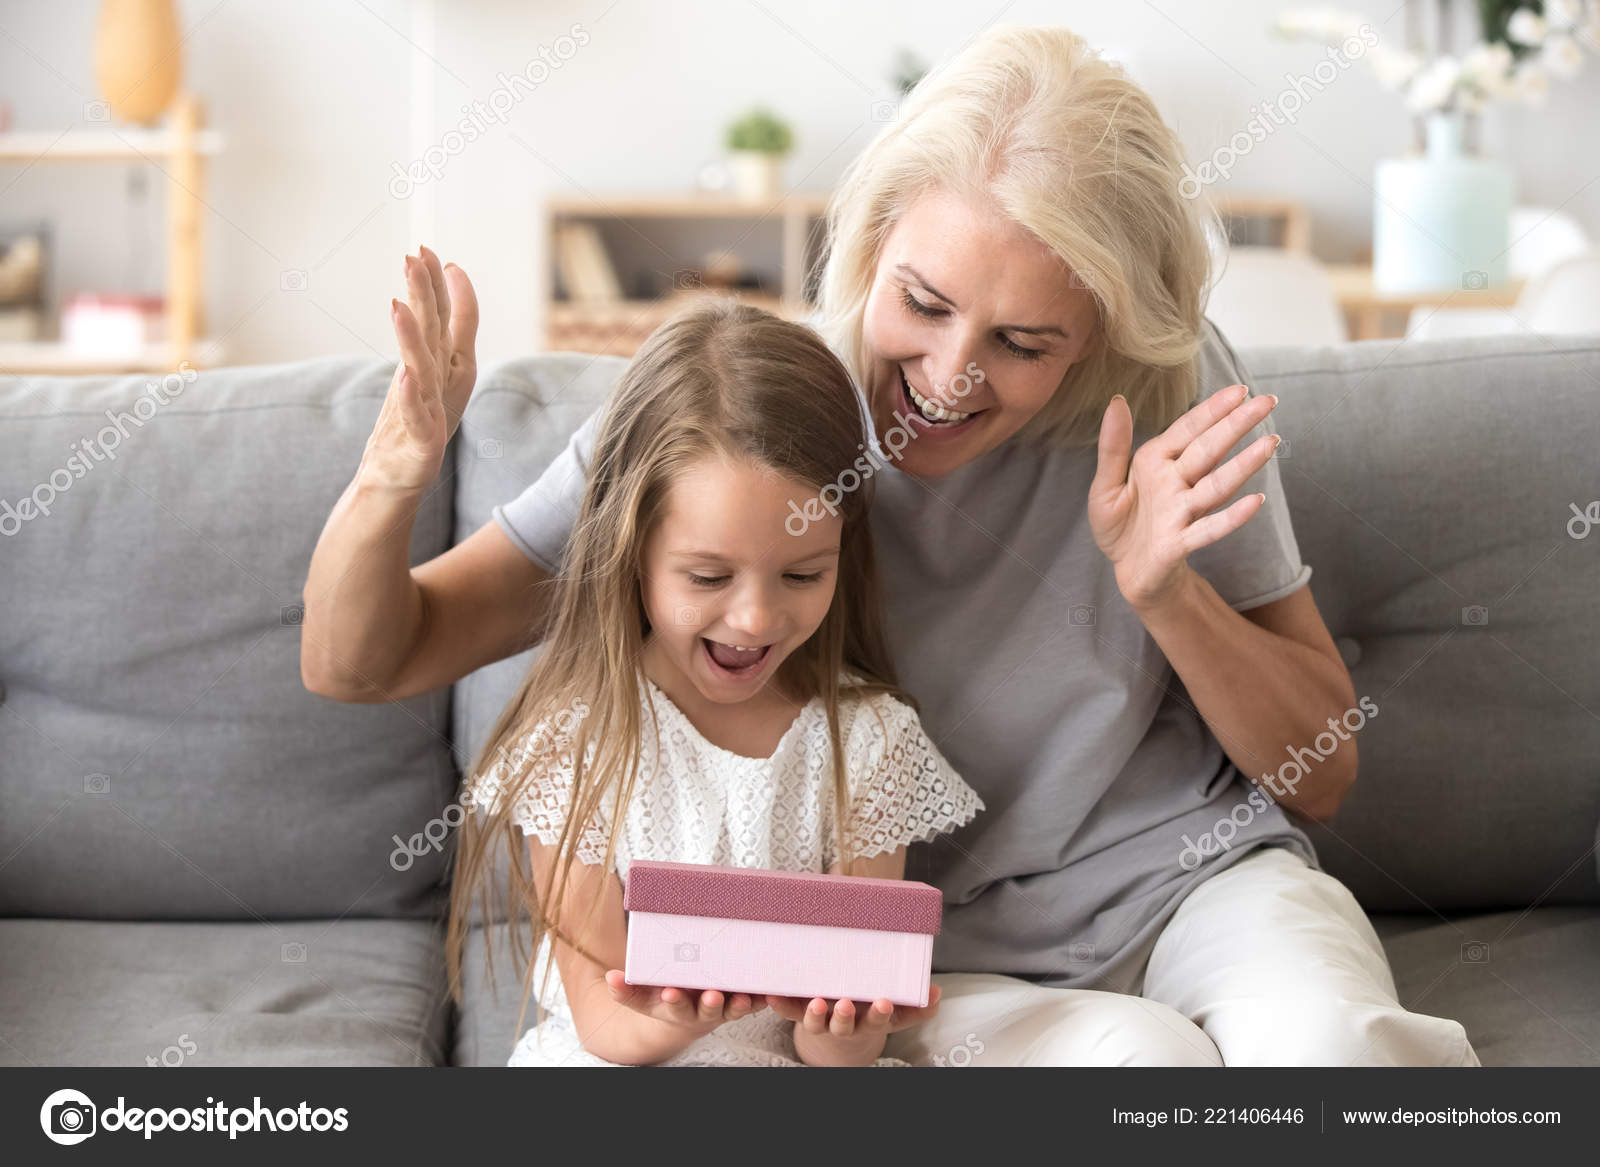 Grandmother Present Excited Little Granddaughter Birthday Gift Stock Photo